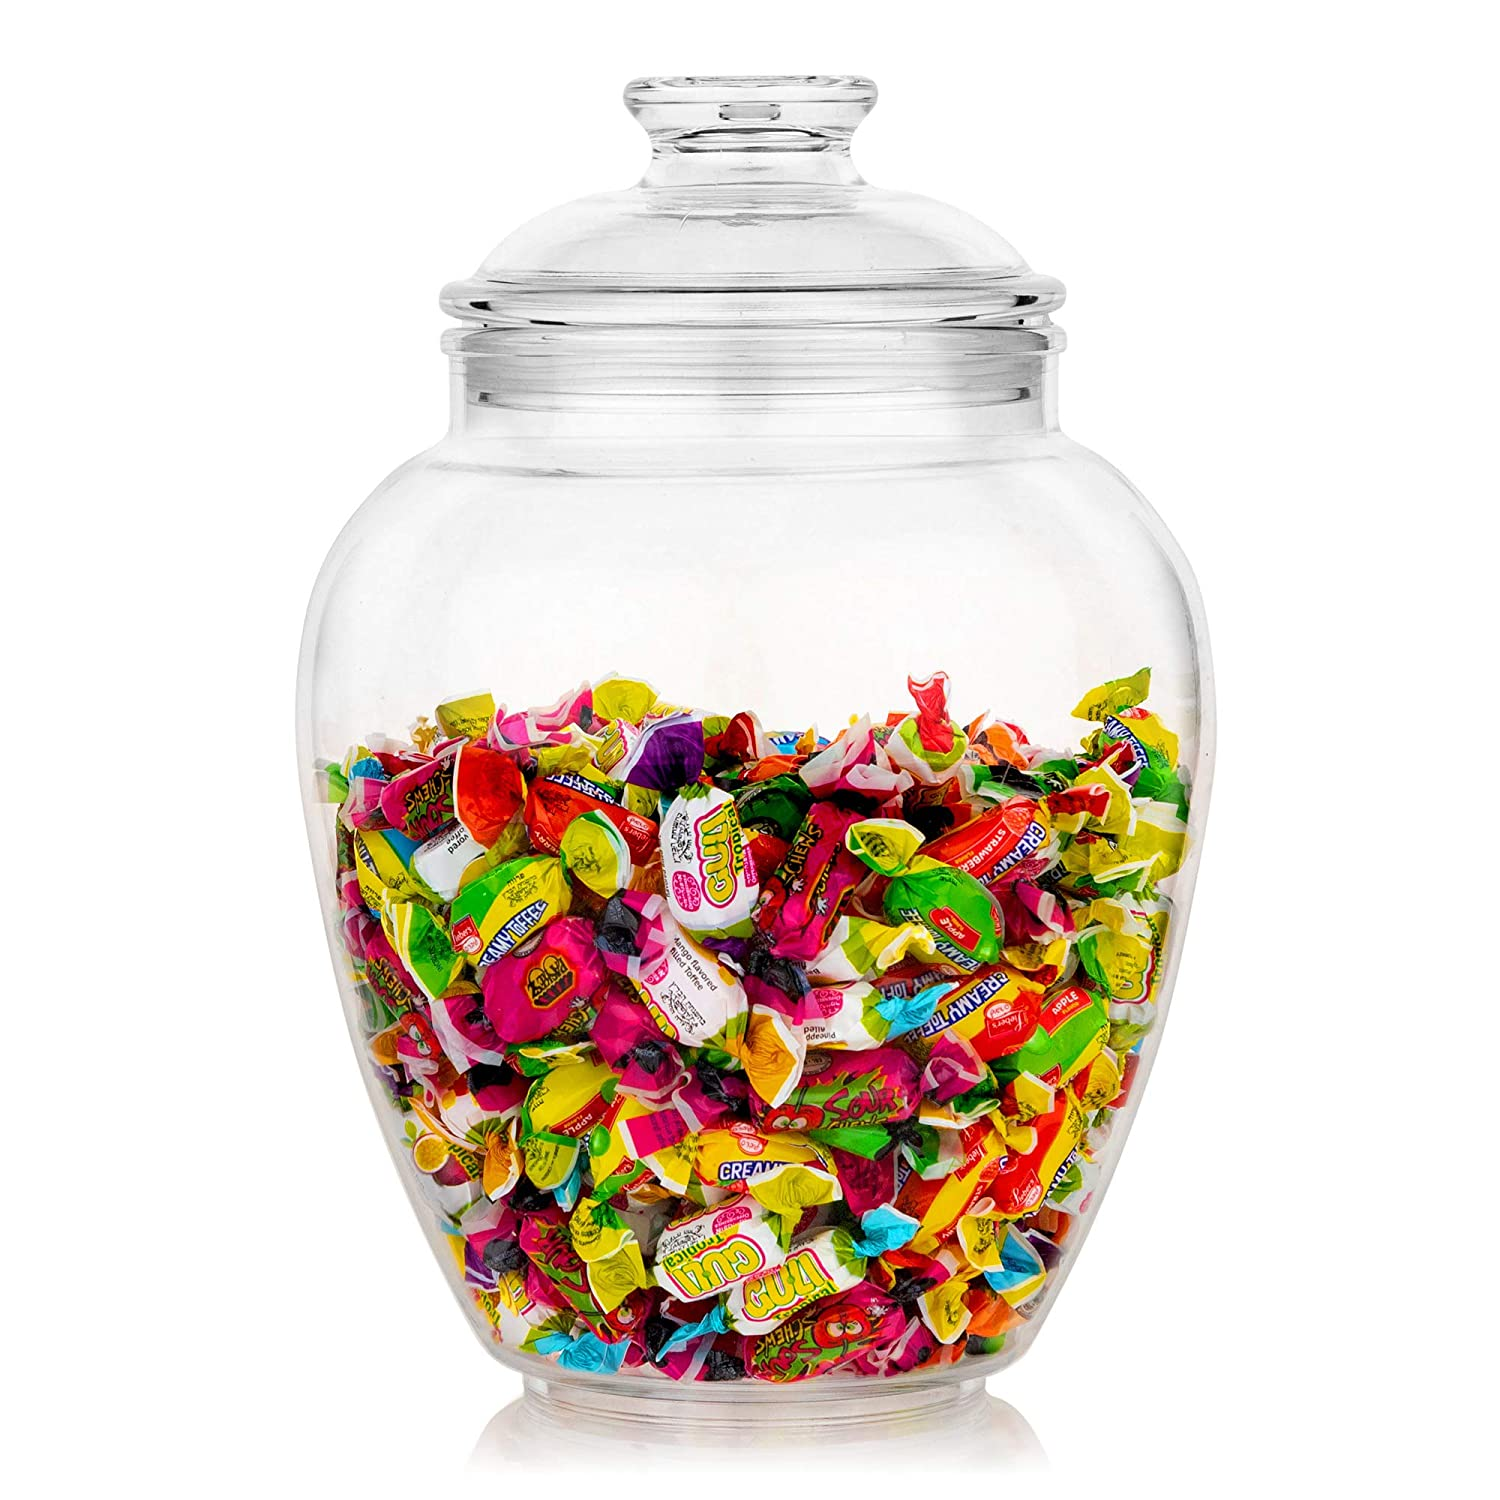 Buy Candy Jar Acrylic Online At Low Prices In India Amazon In